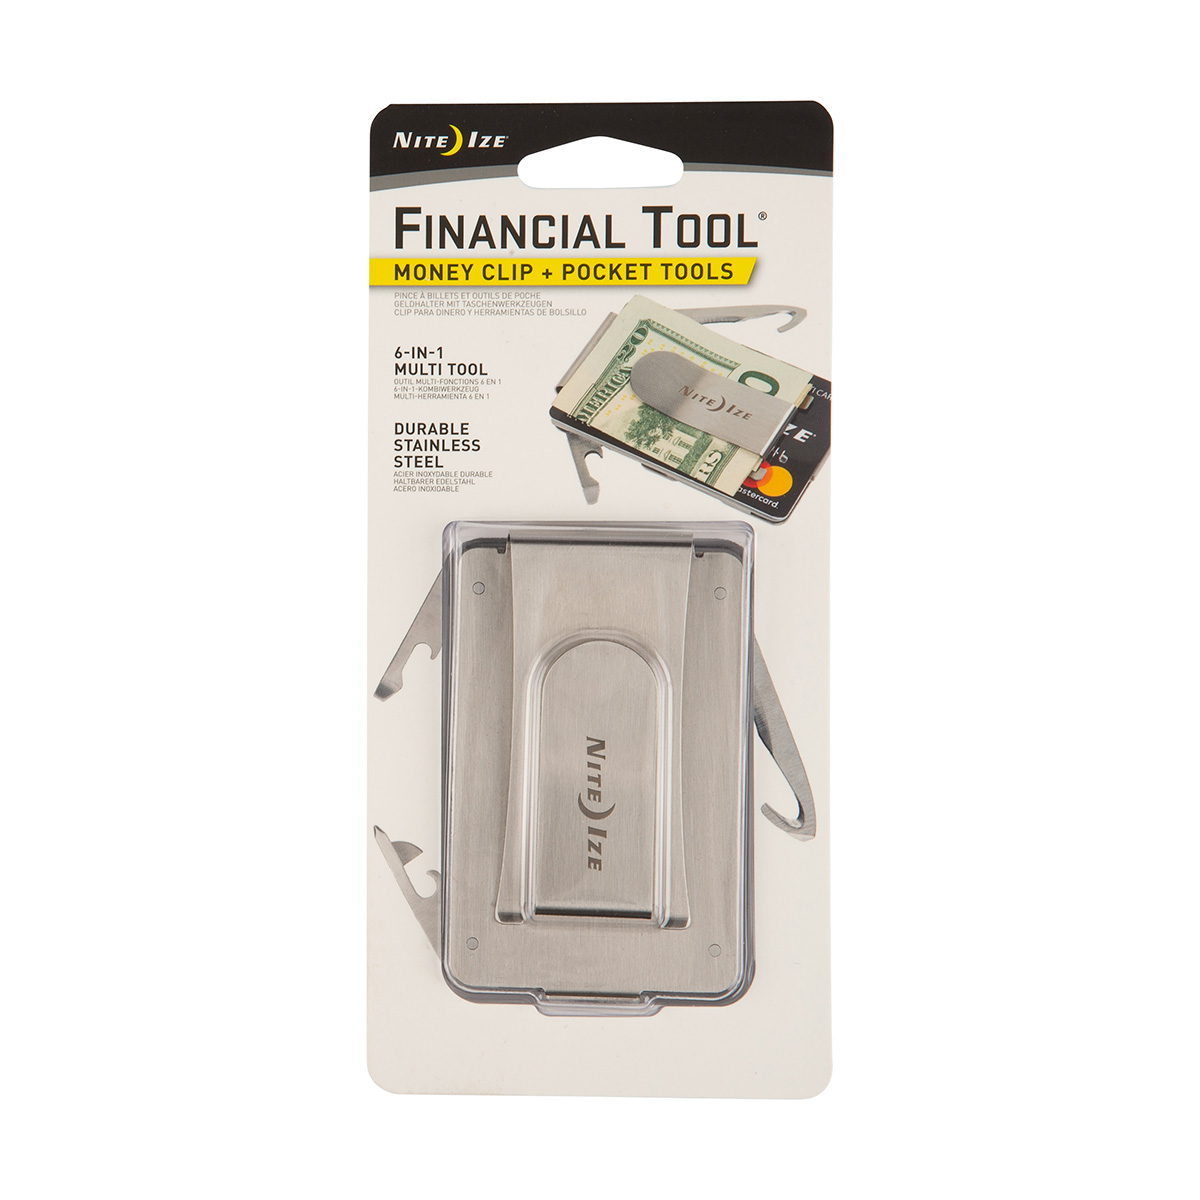 Financial Tool  Money Clip + Pocket Tools